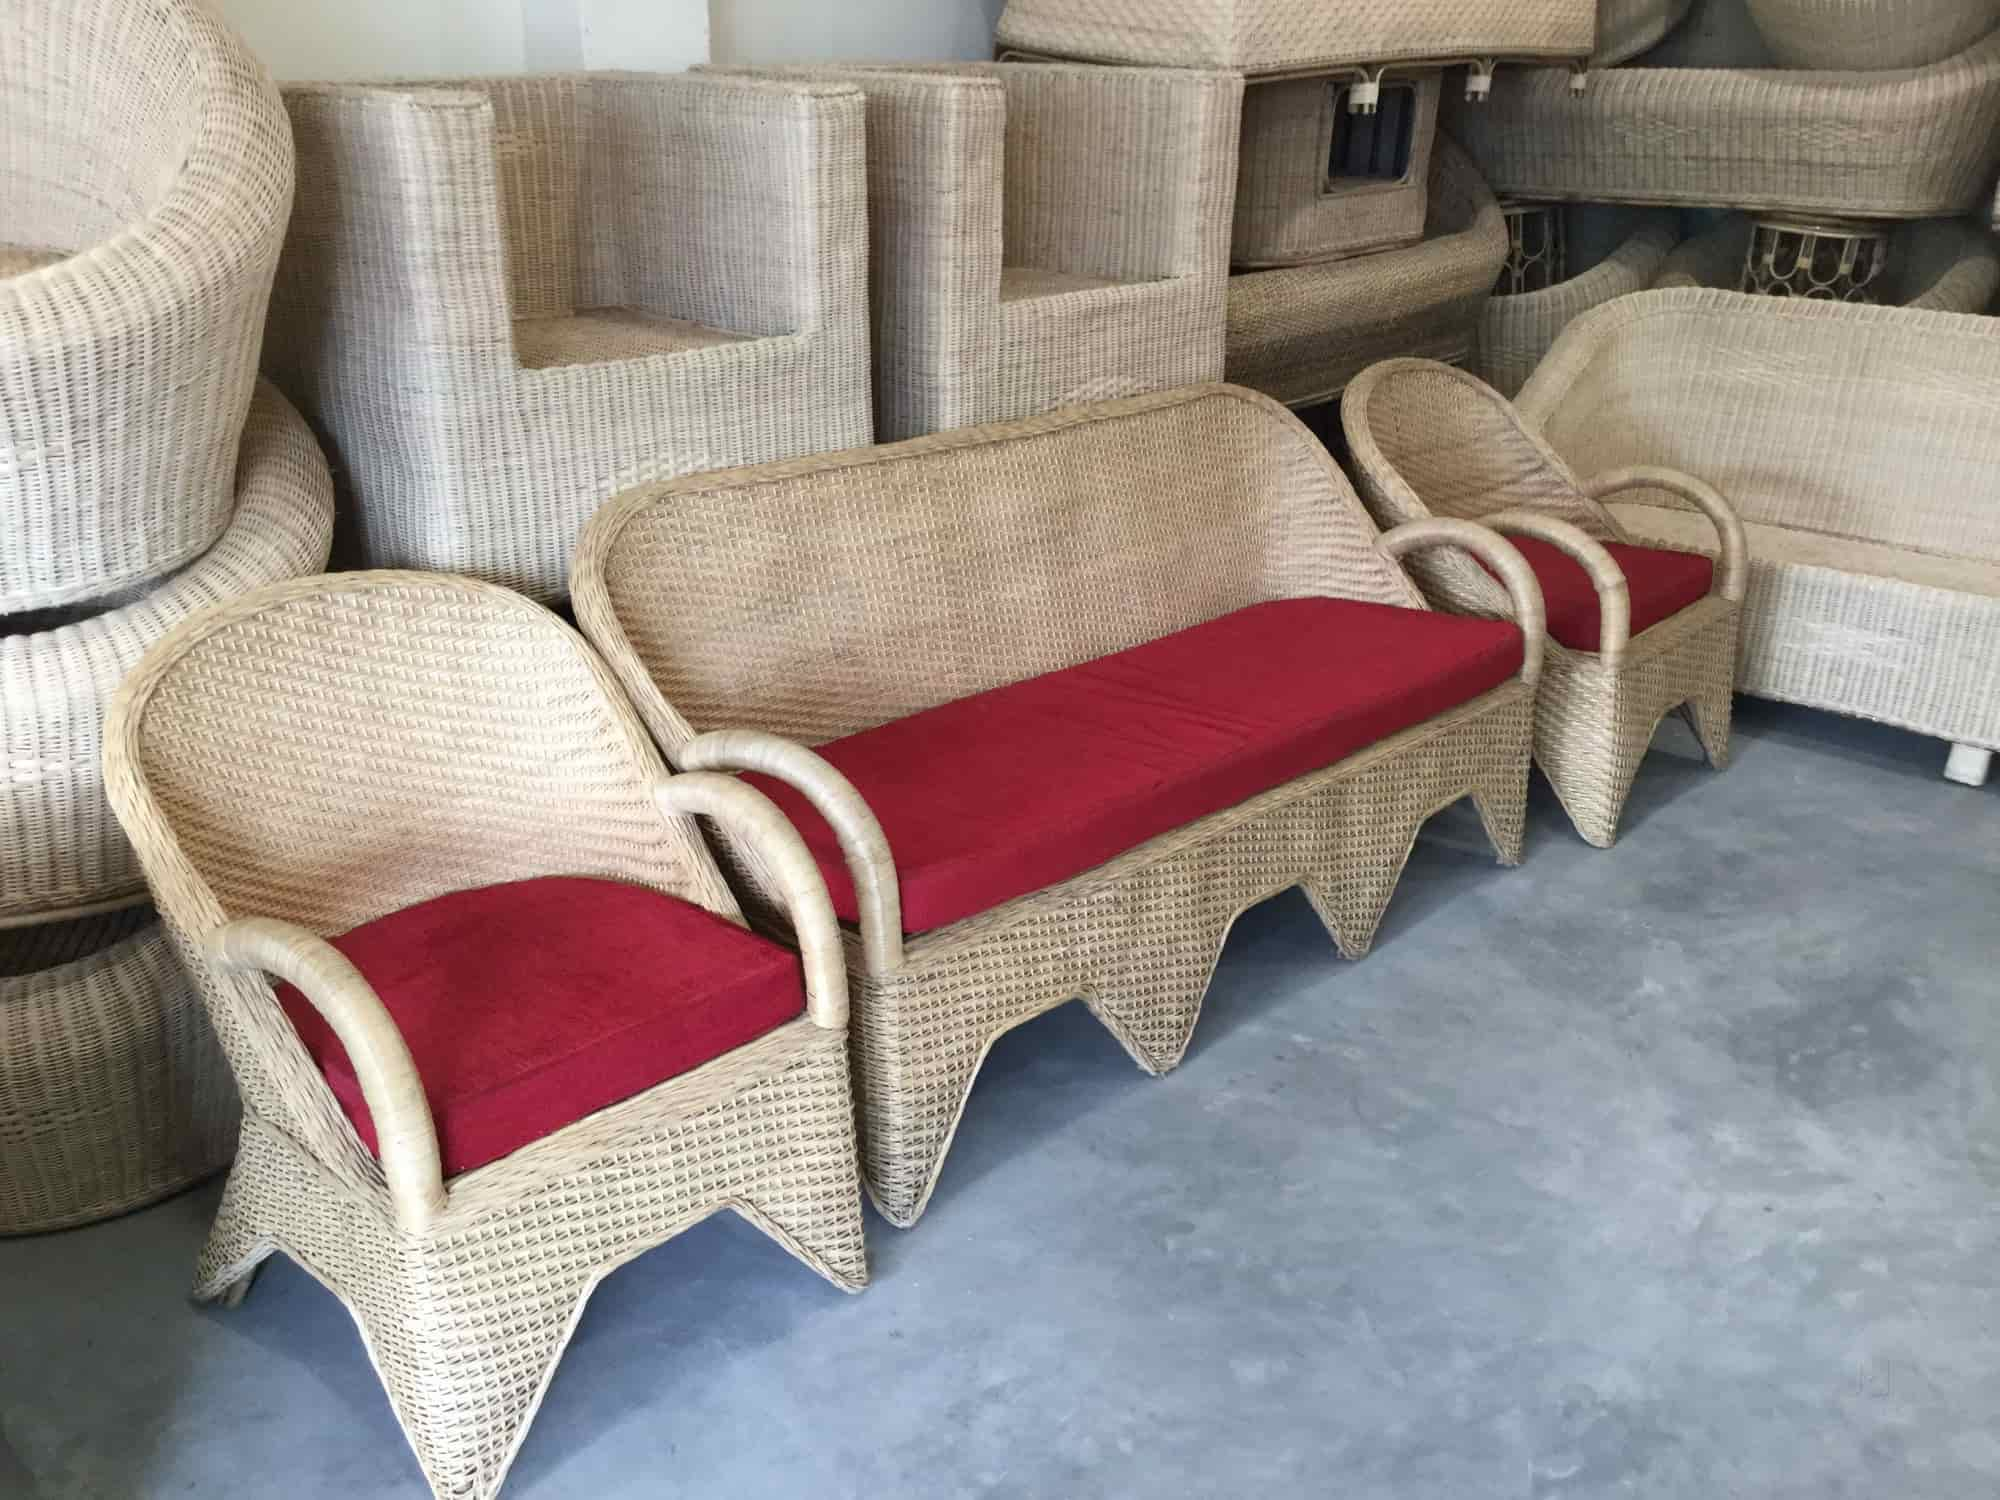 cane sofa cost in hyderabad beautiful sofas for sale second hand set baci living room